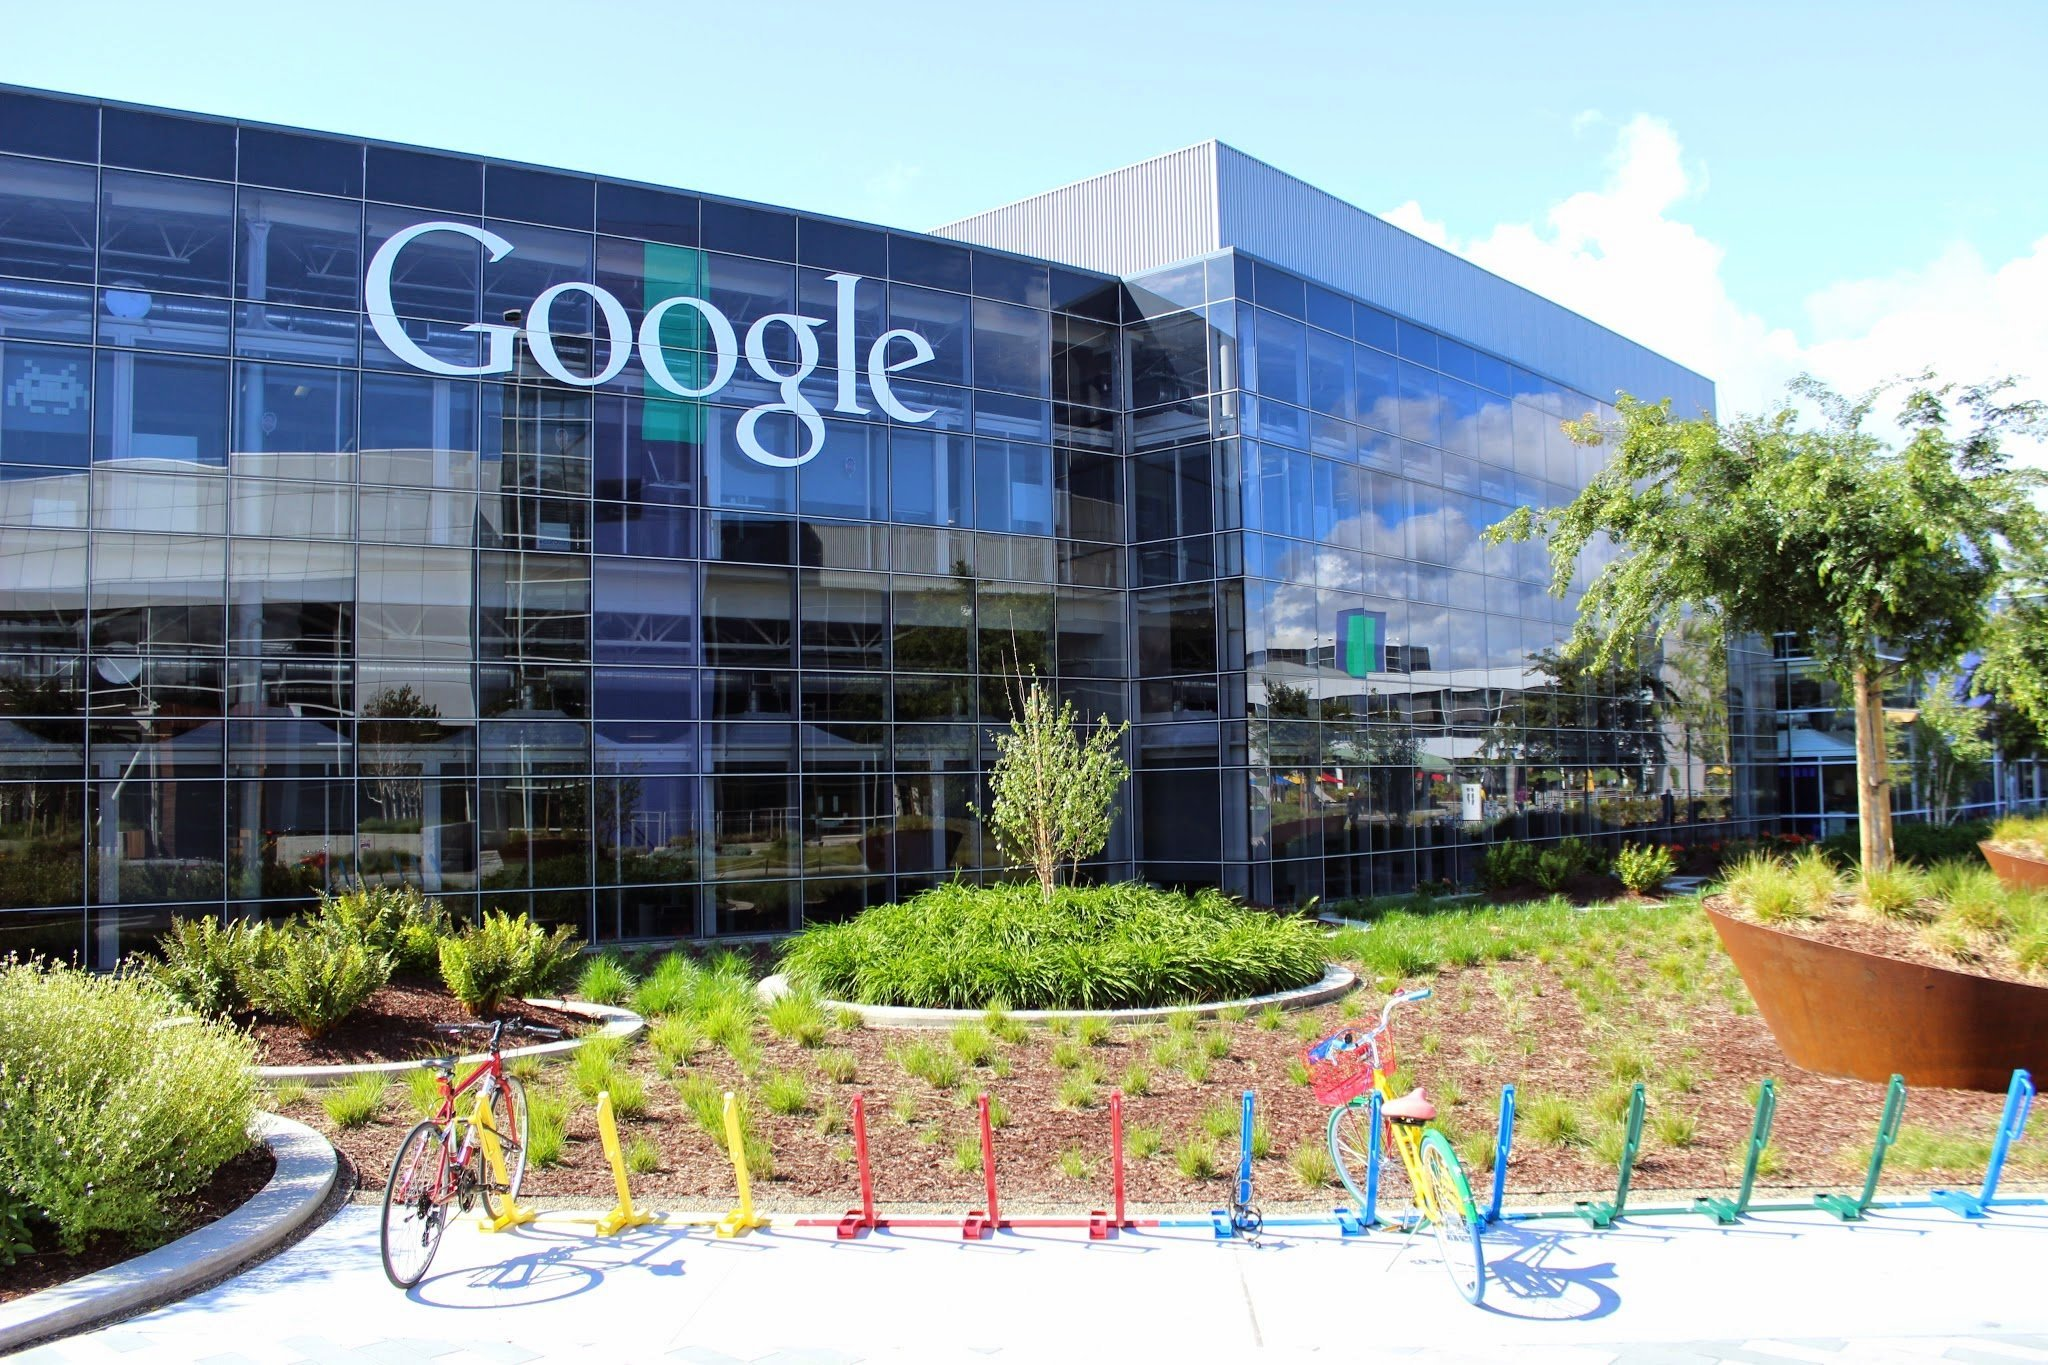 Google-Hauptsitz in Mountain View